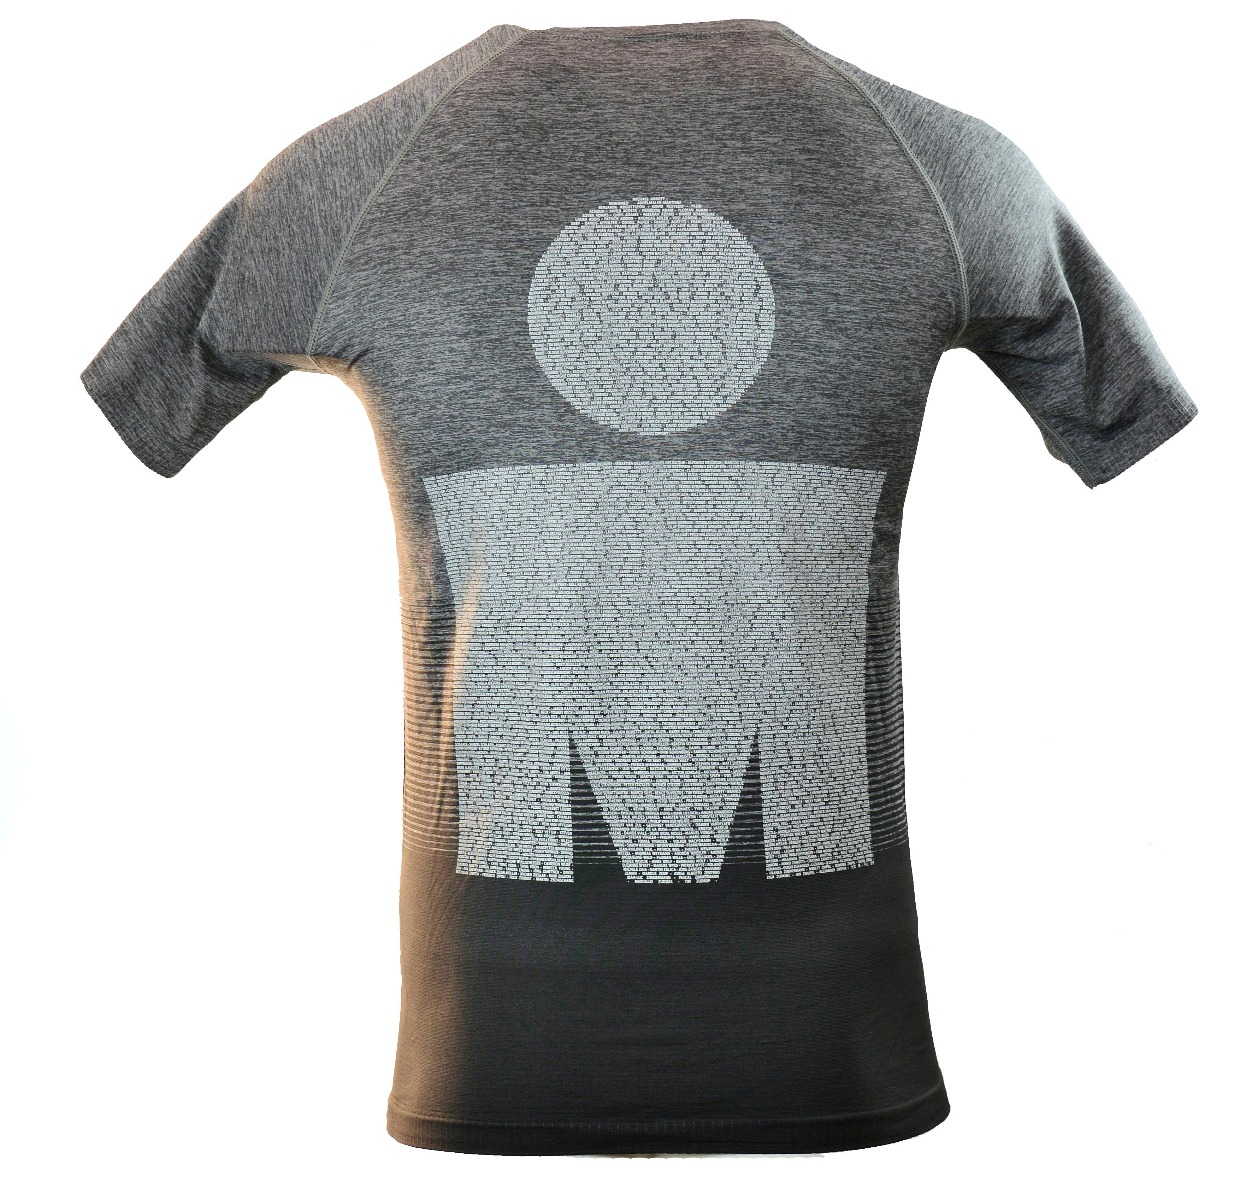 IRONMAN WALES 2019 MEN'S NAME PERFORMANCE TEE